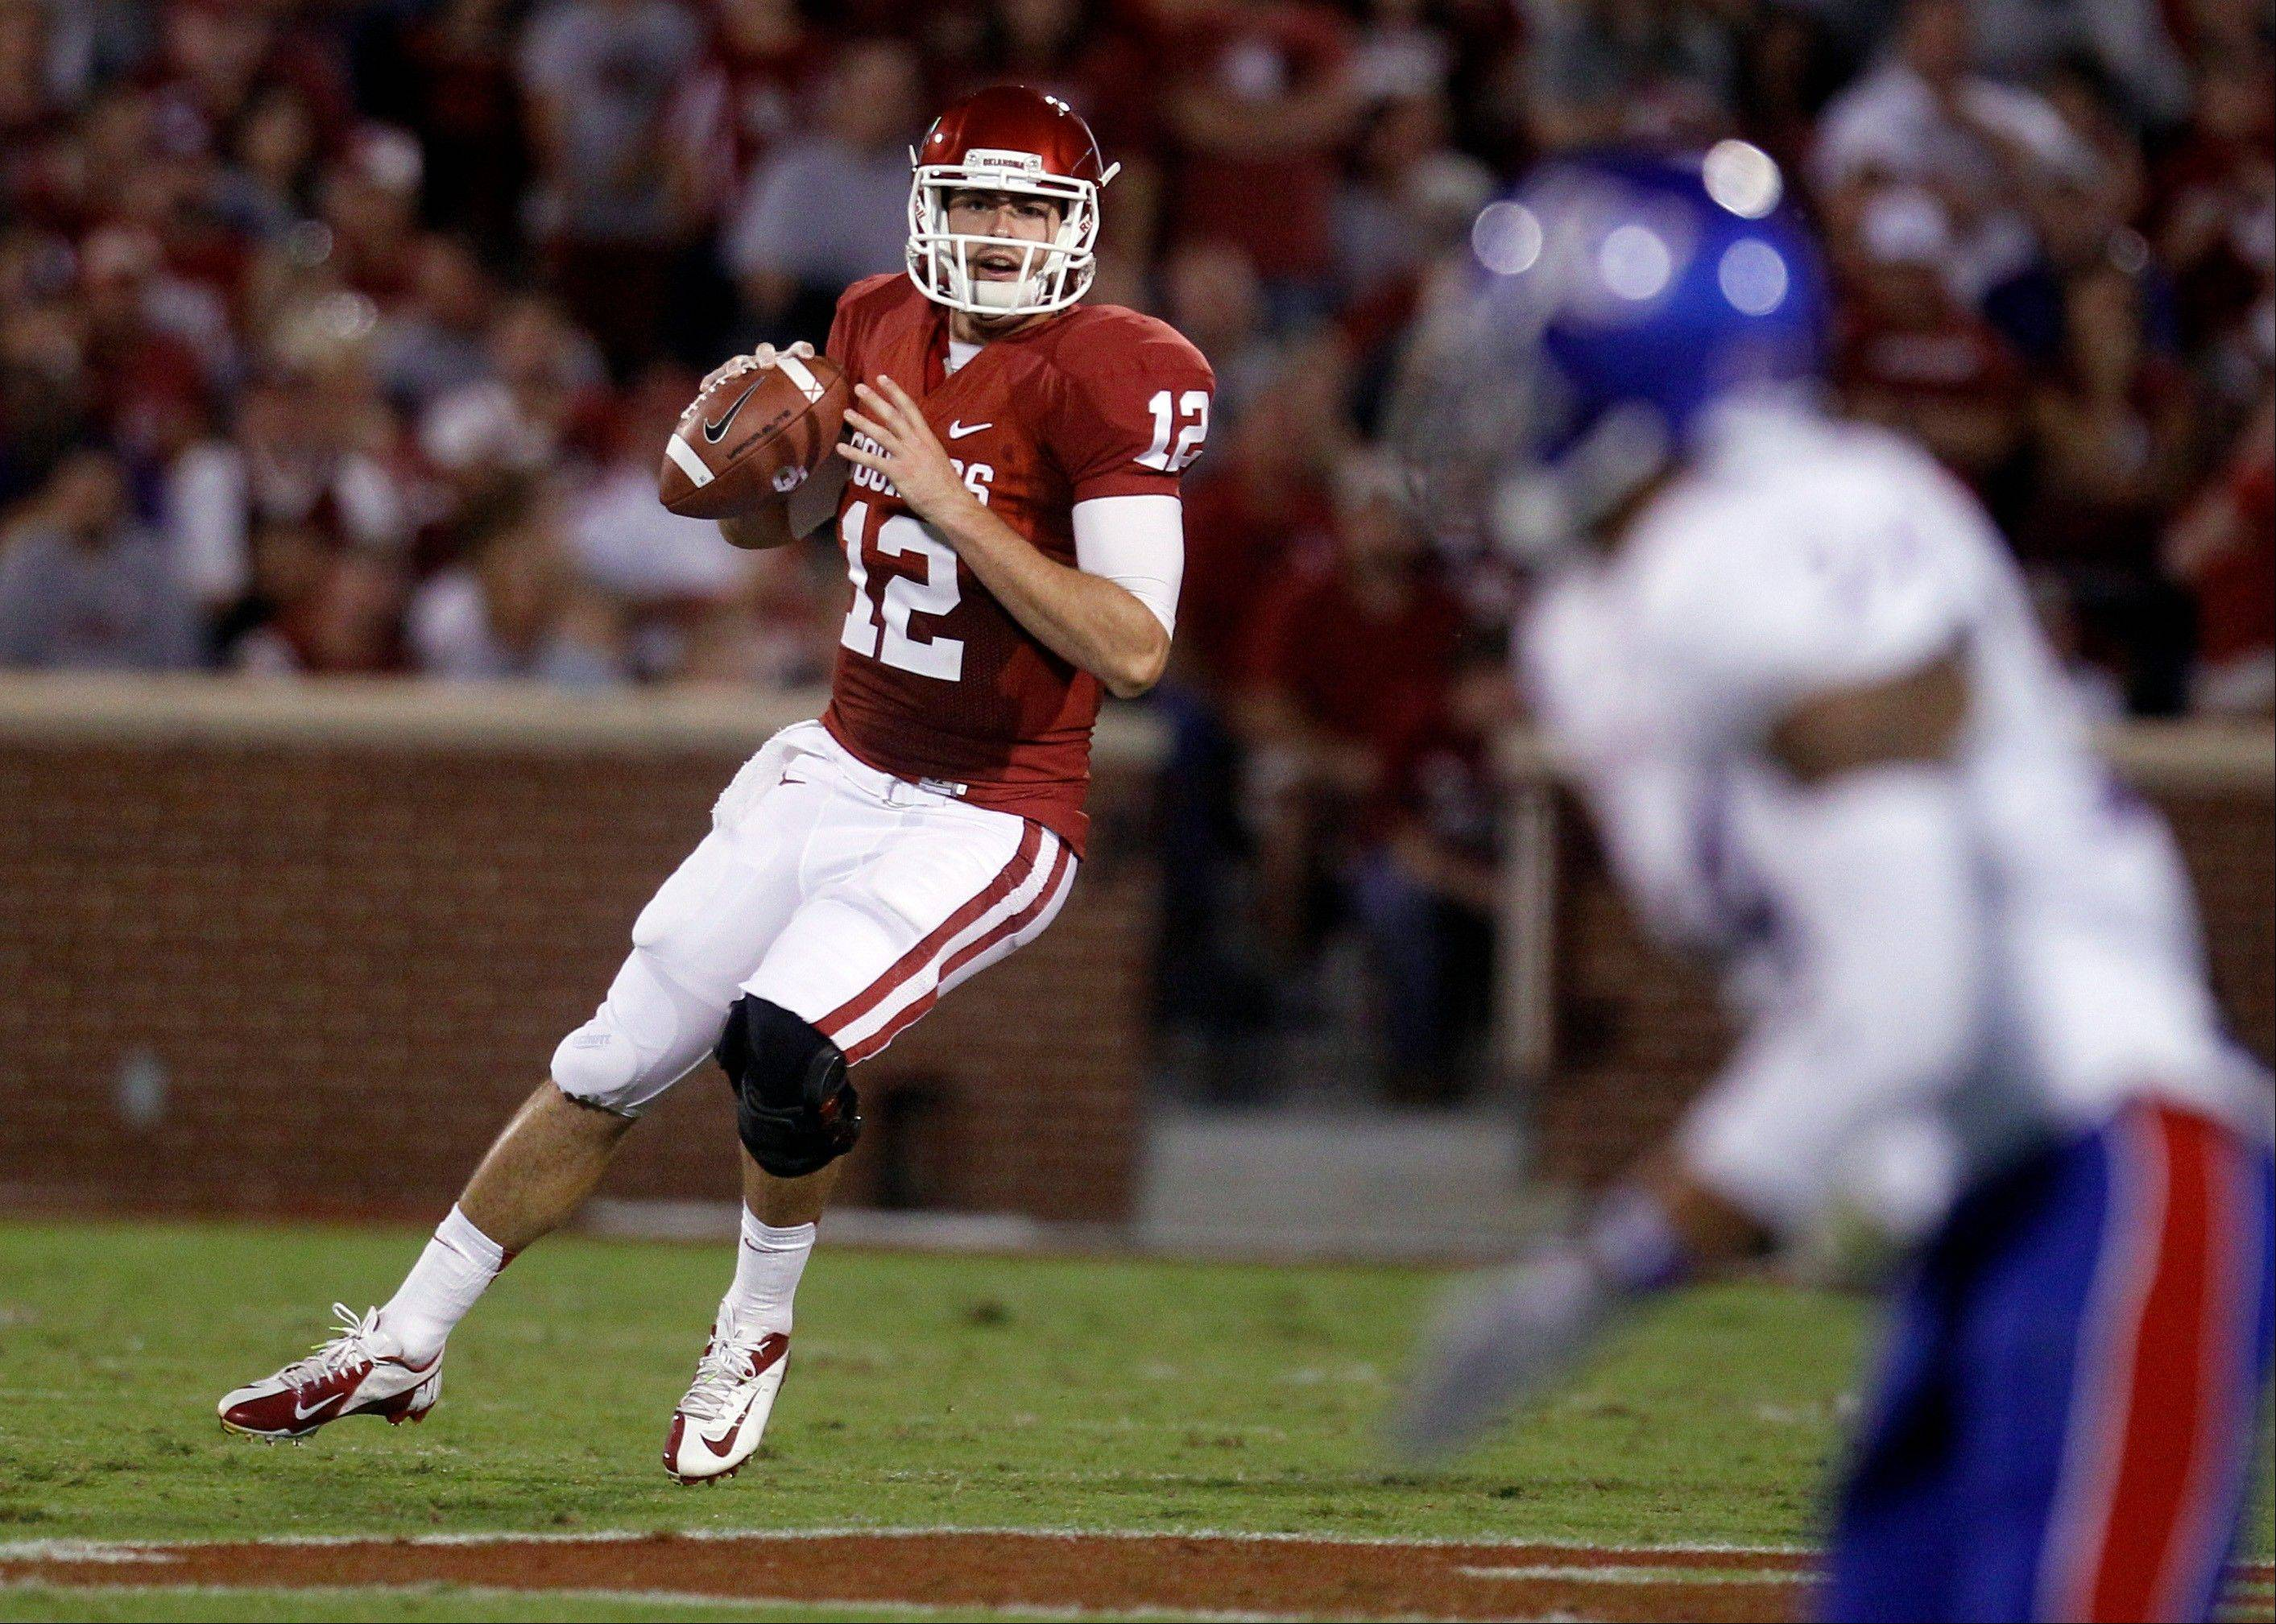 Oklahoma quarterback Landry Jones gets ready to pass against Kansas during the second quarter of last Saturday's game in Norman, Okla. The Sooners won 52-7.